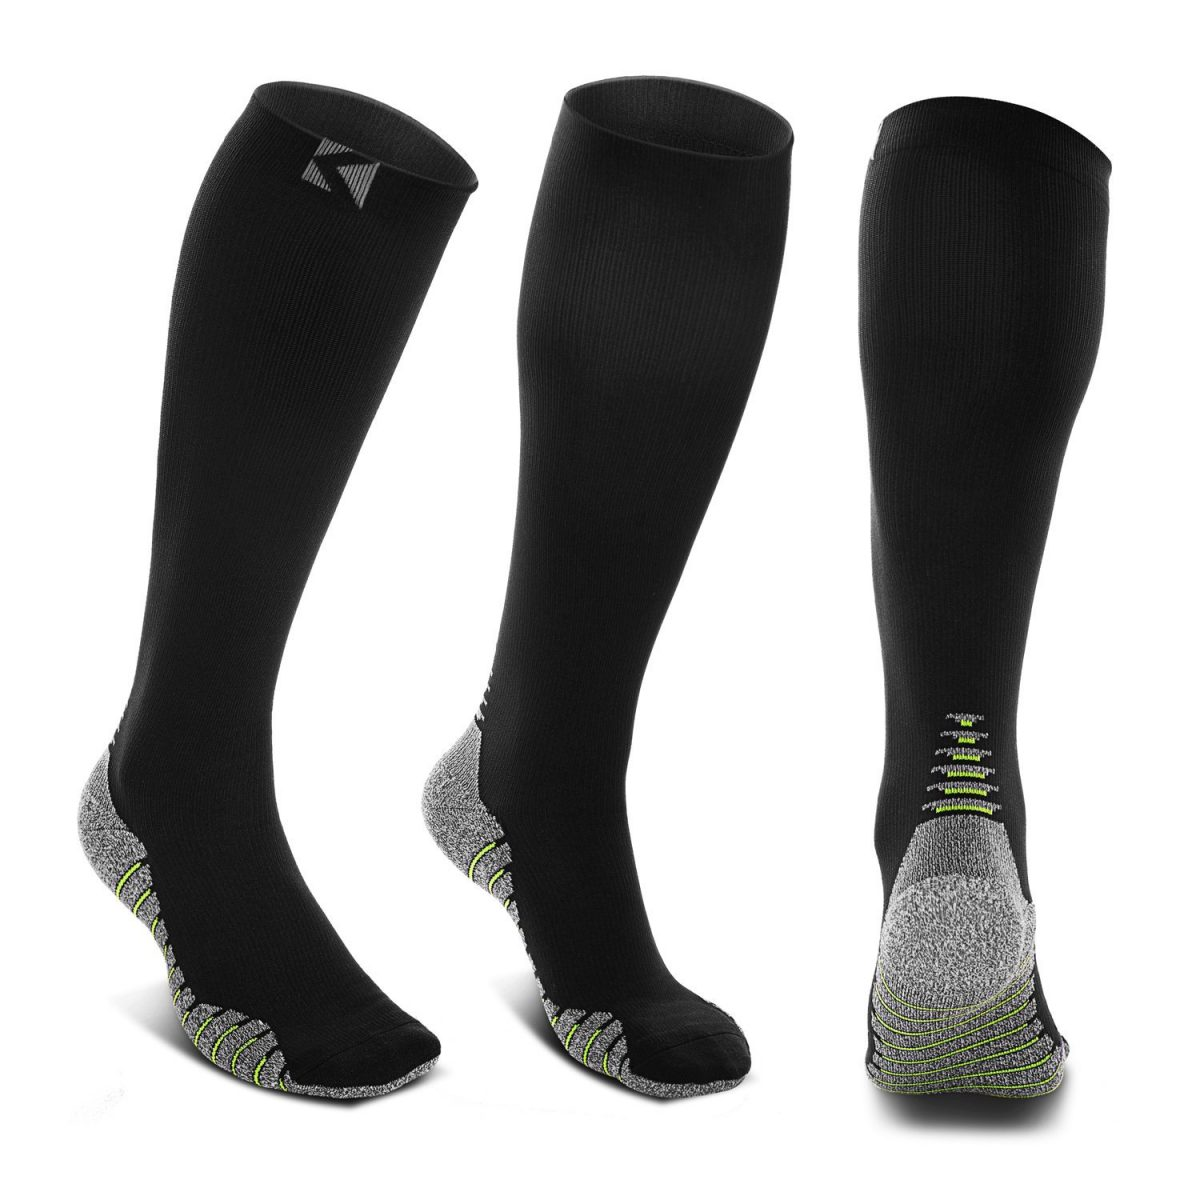 Compression Socks for Men and Women by Keelyn Premium – $14.99